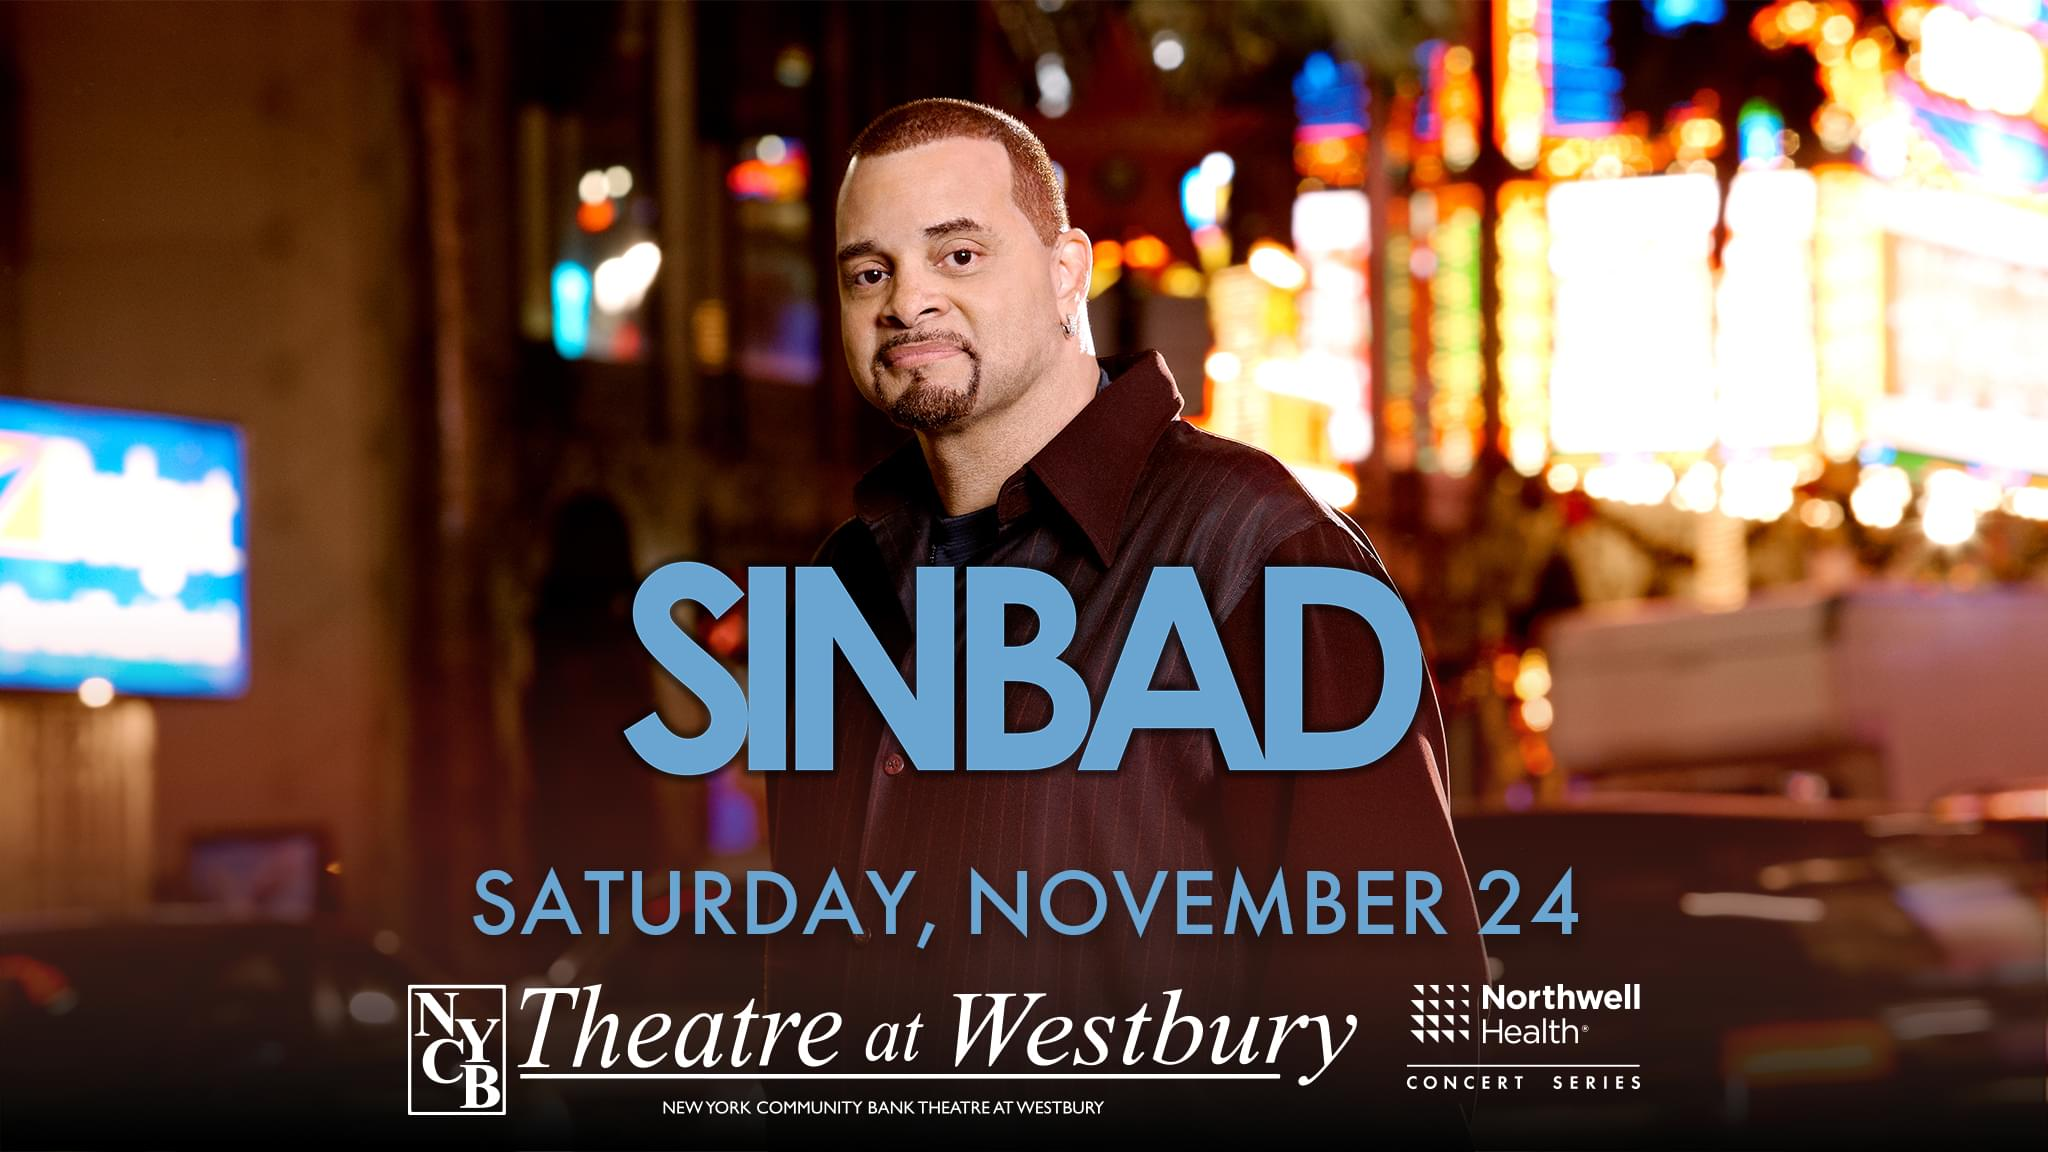 Win Tickets for Sinbad!